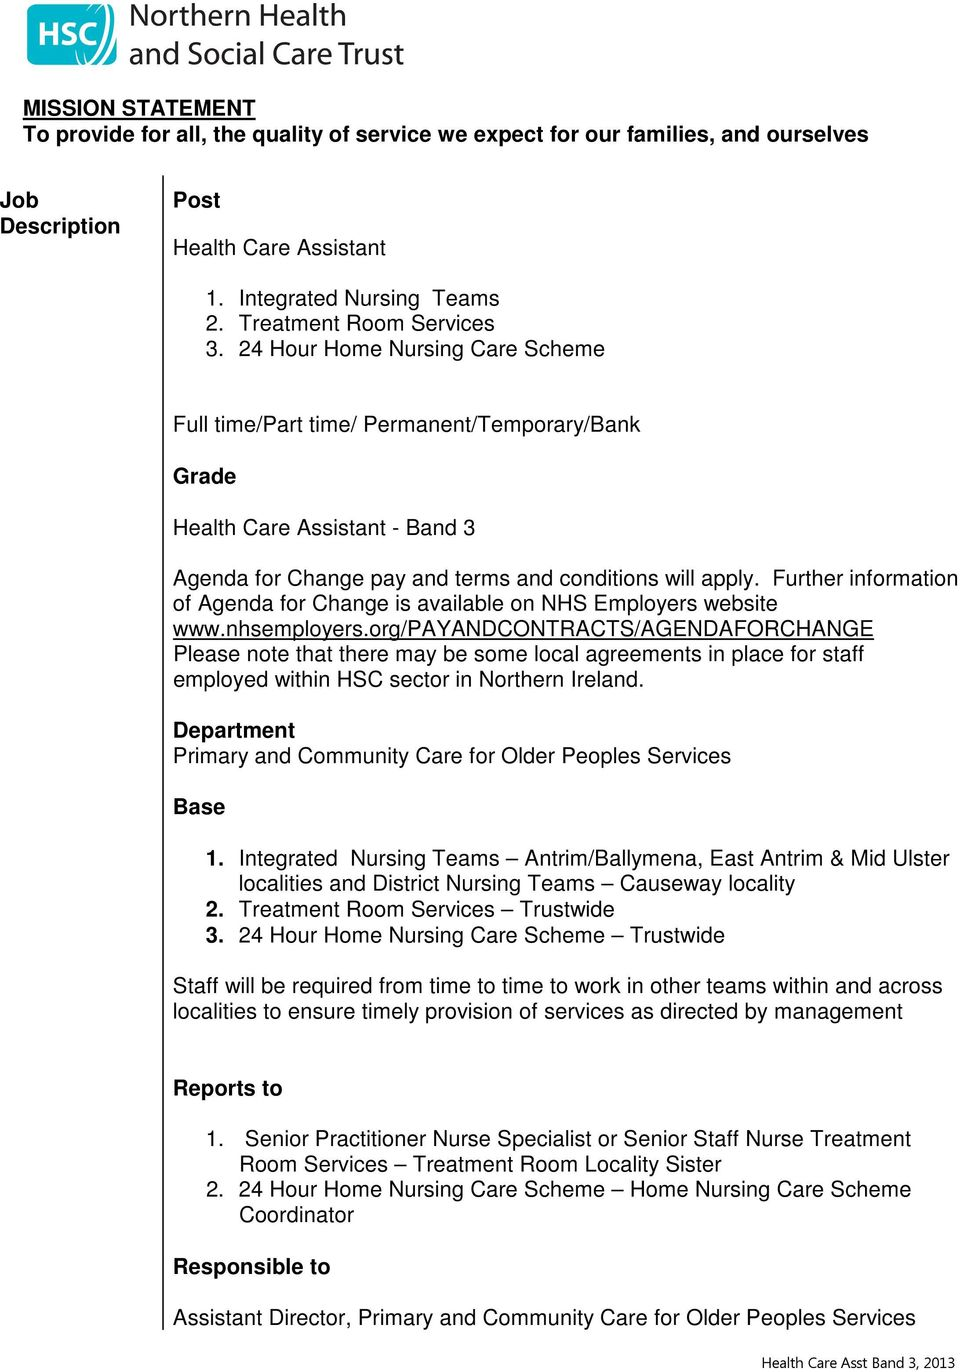 24 Hour Home Nursing Care Scheme Full time/part time/ Permanent/Temporary/Bank Grade Health Care Assistant - Band 3 Agenda for Change pay and terms and conditions will apply.